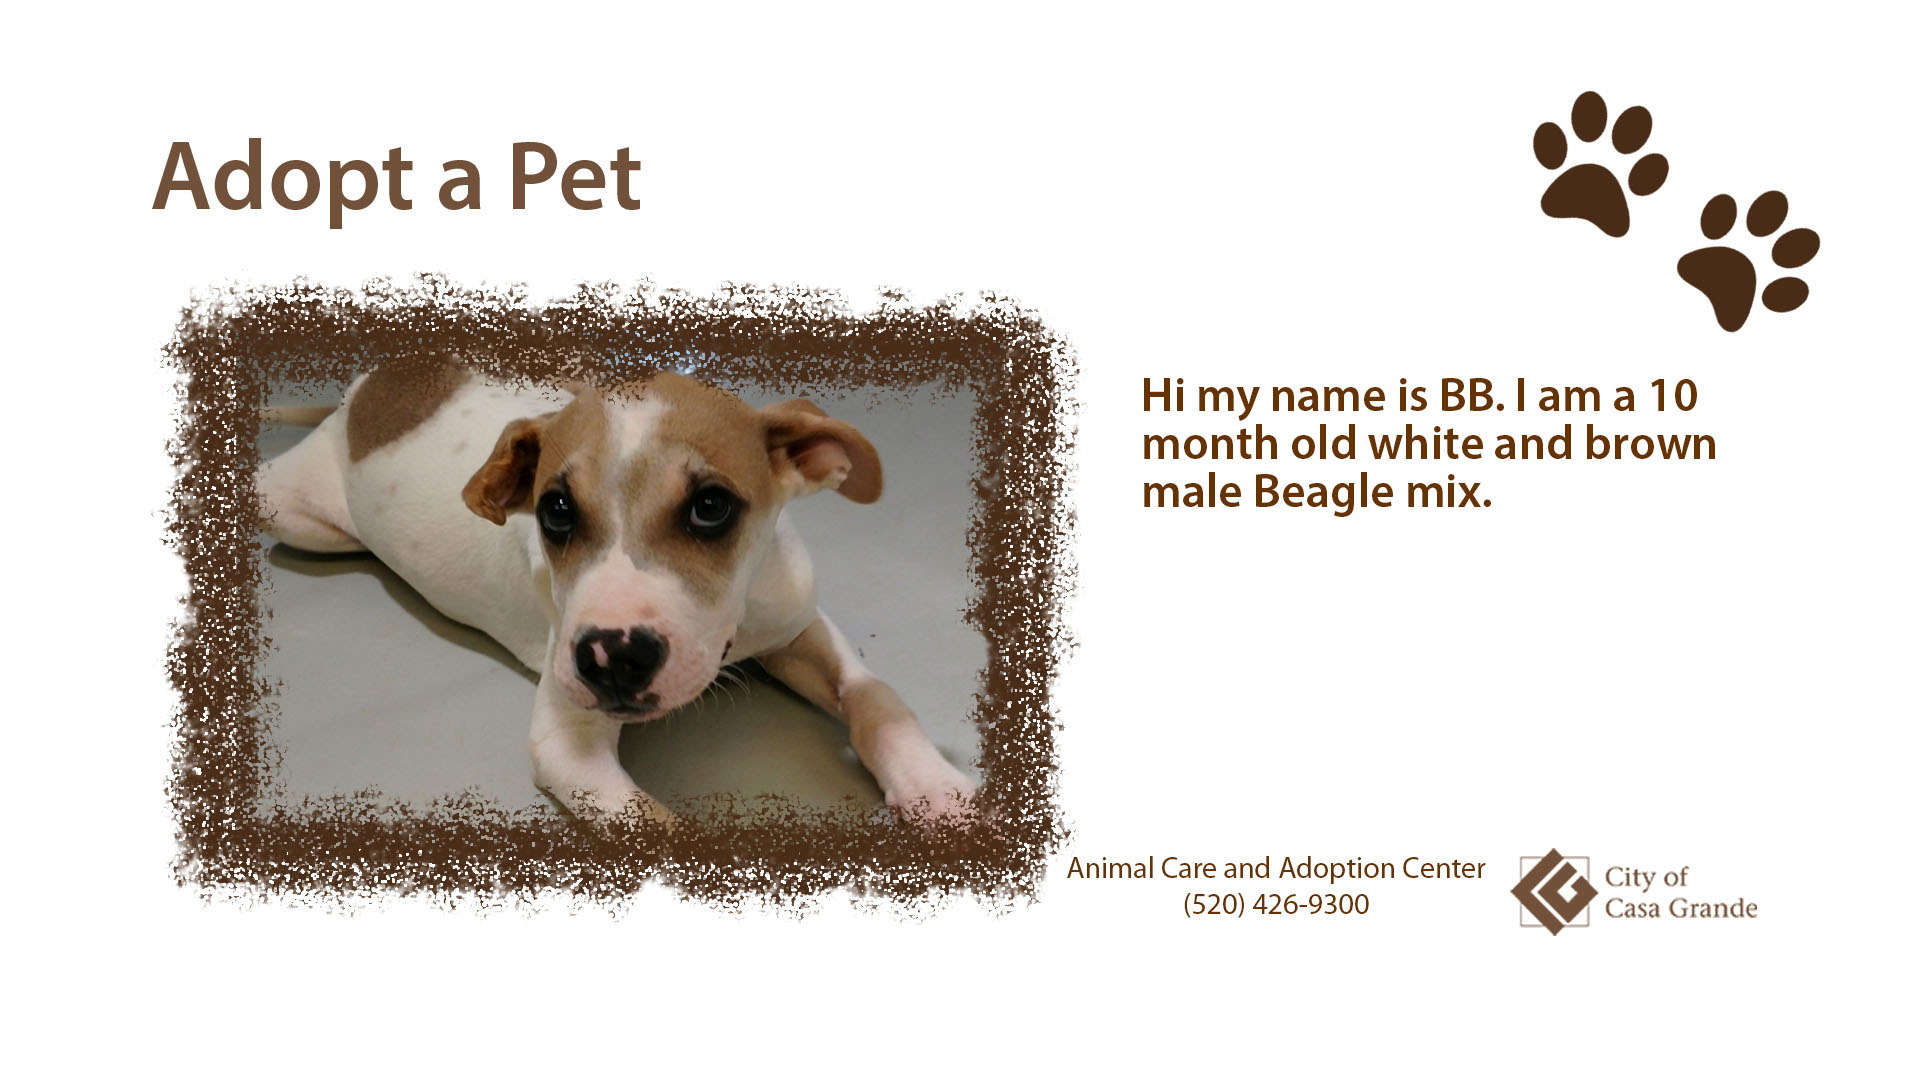 Ten month old white and brown male Beagle mix named BB